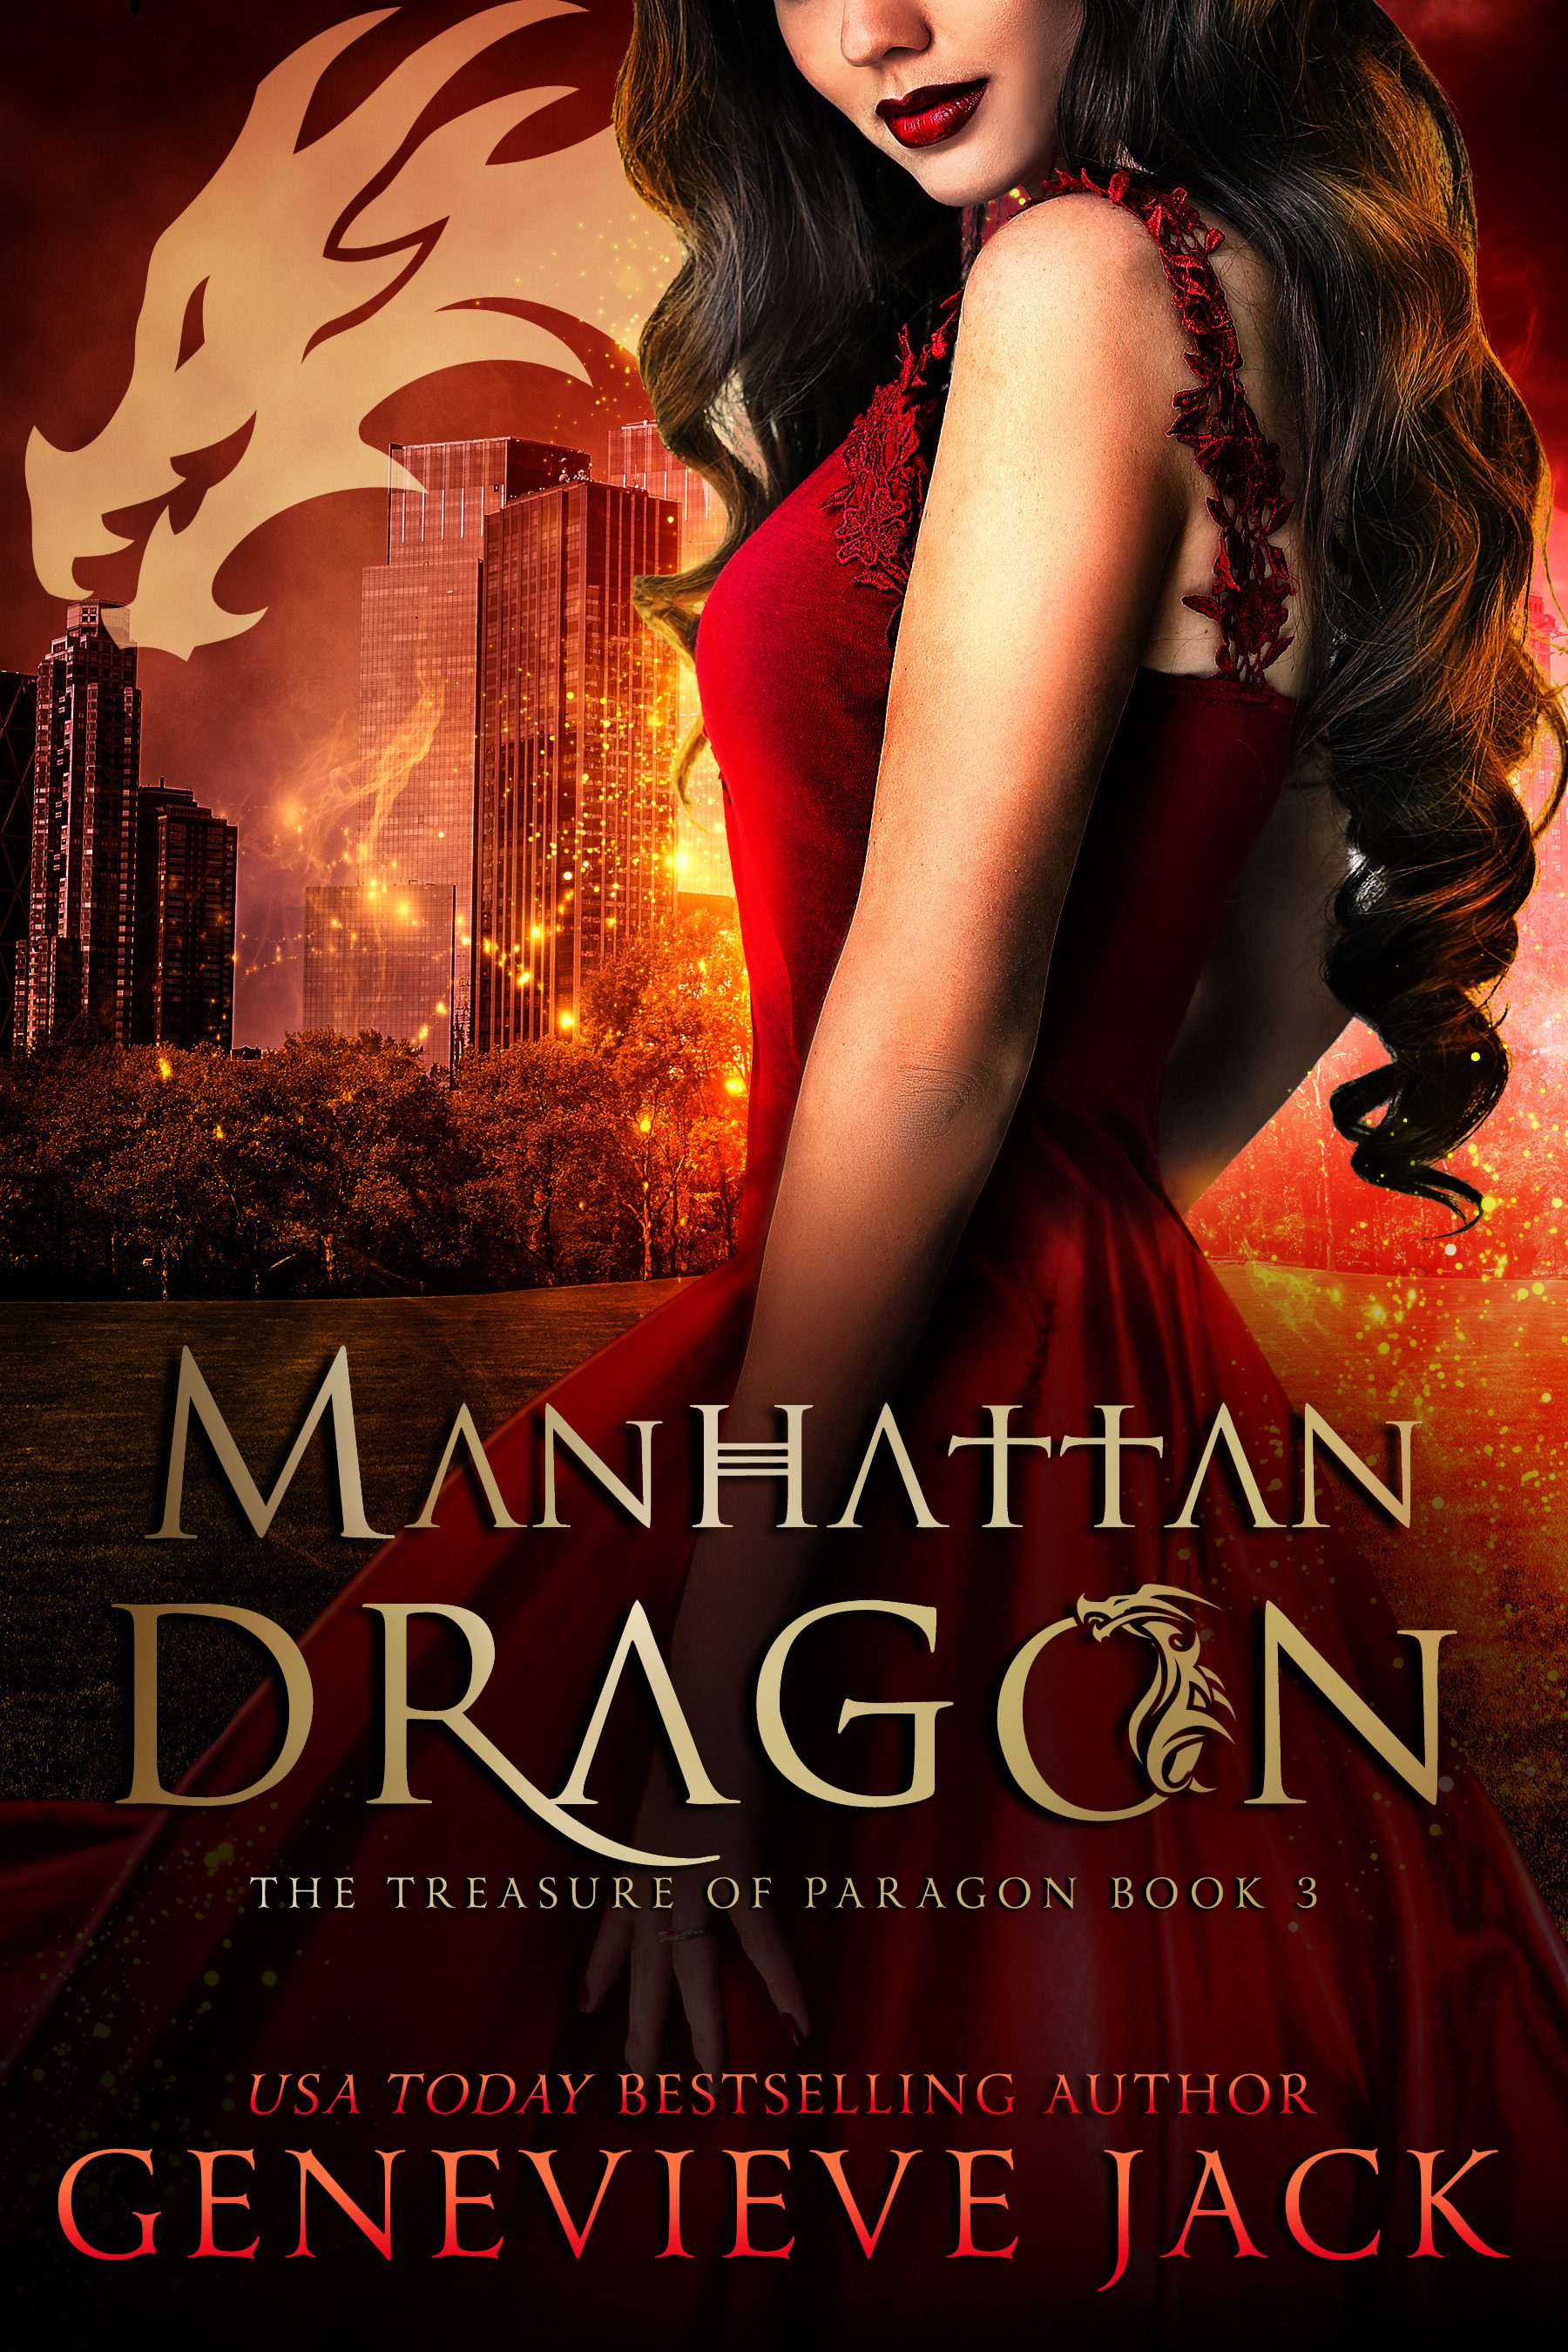 Manhattan Dragon (The Treasure of Paragon, #3)